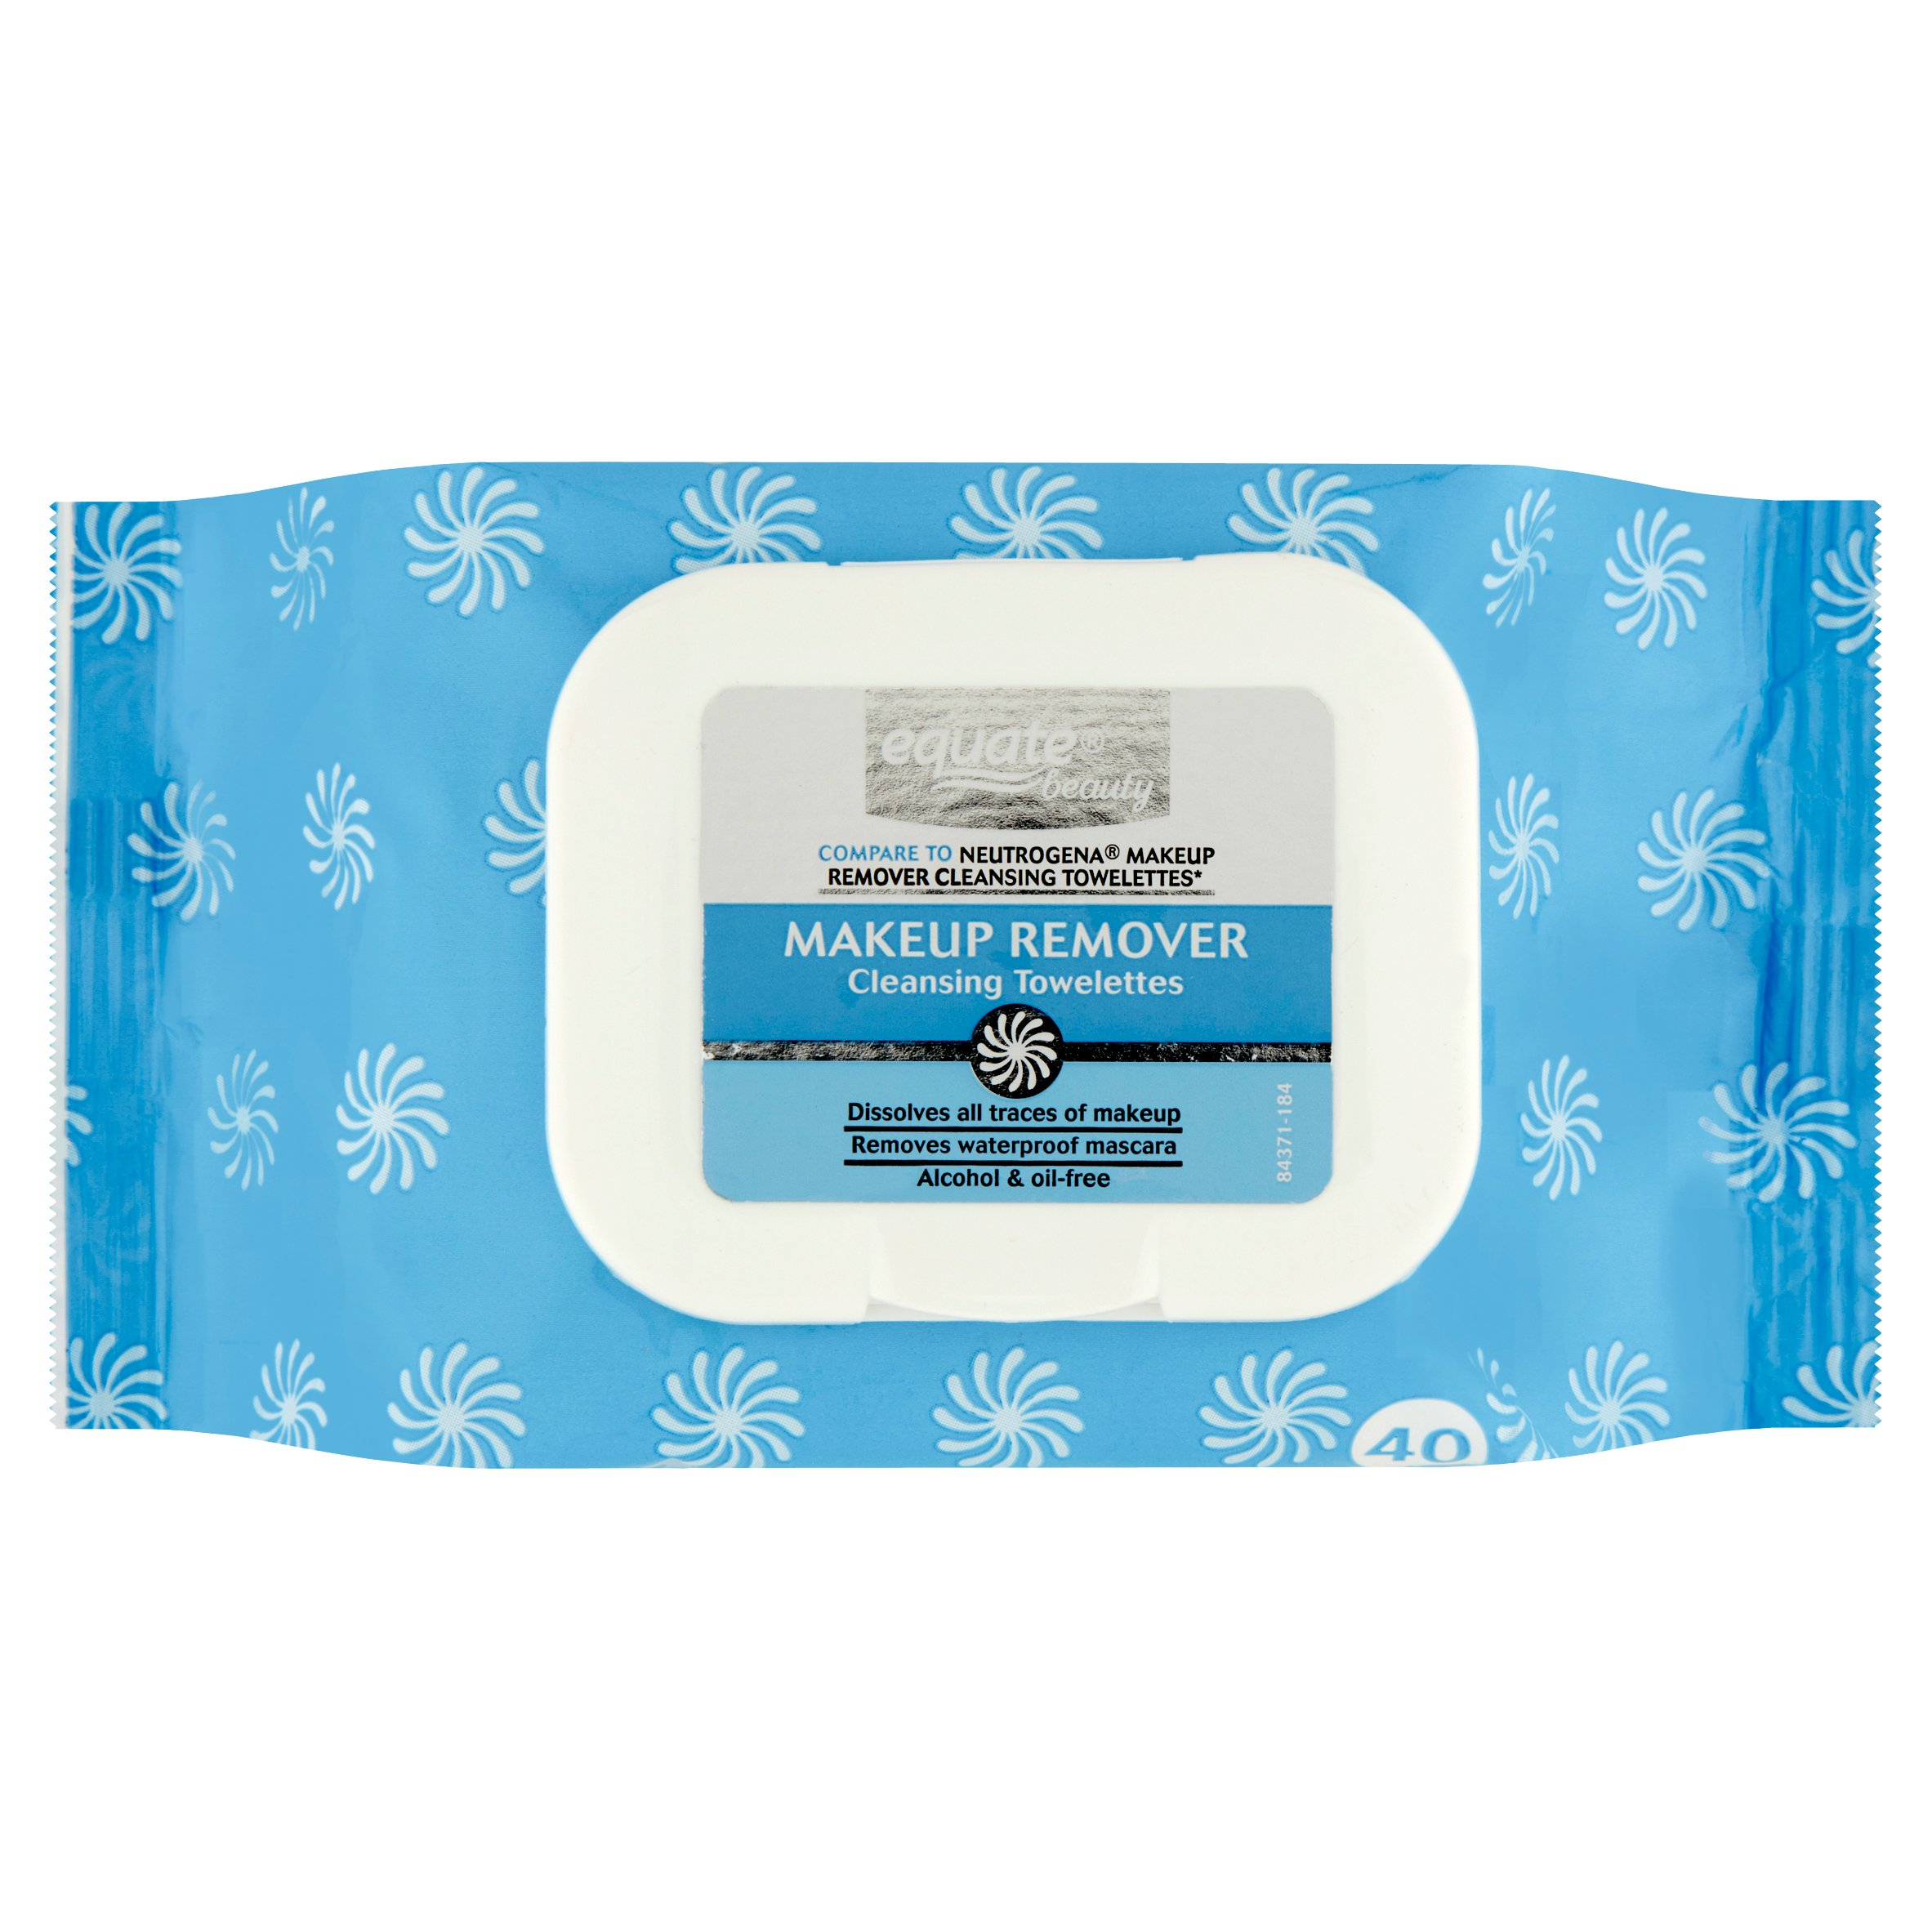 Equate Beauty Makeup Remover Cleansing Towelettes, 40 Ct